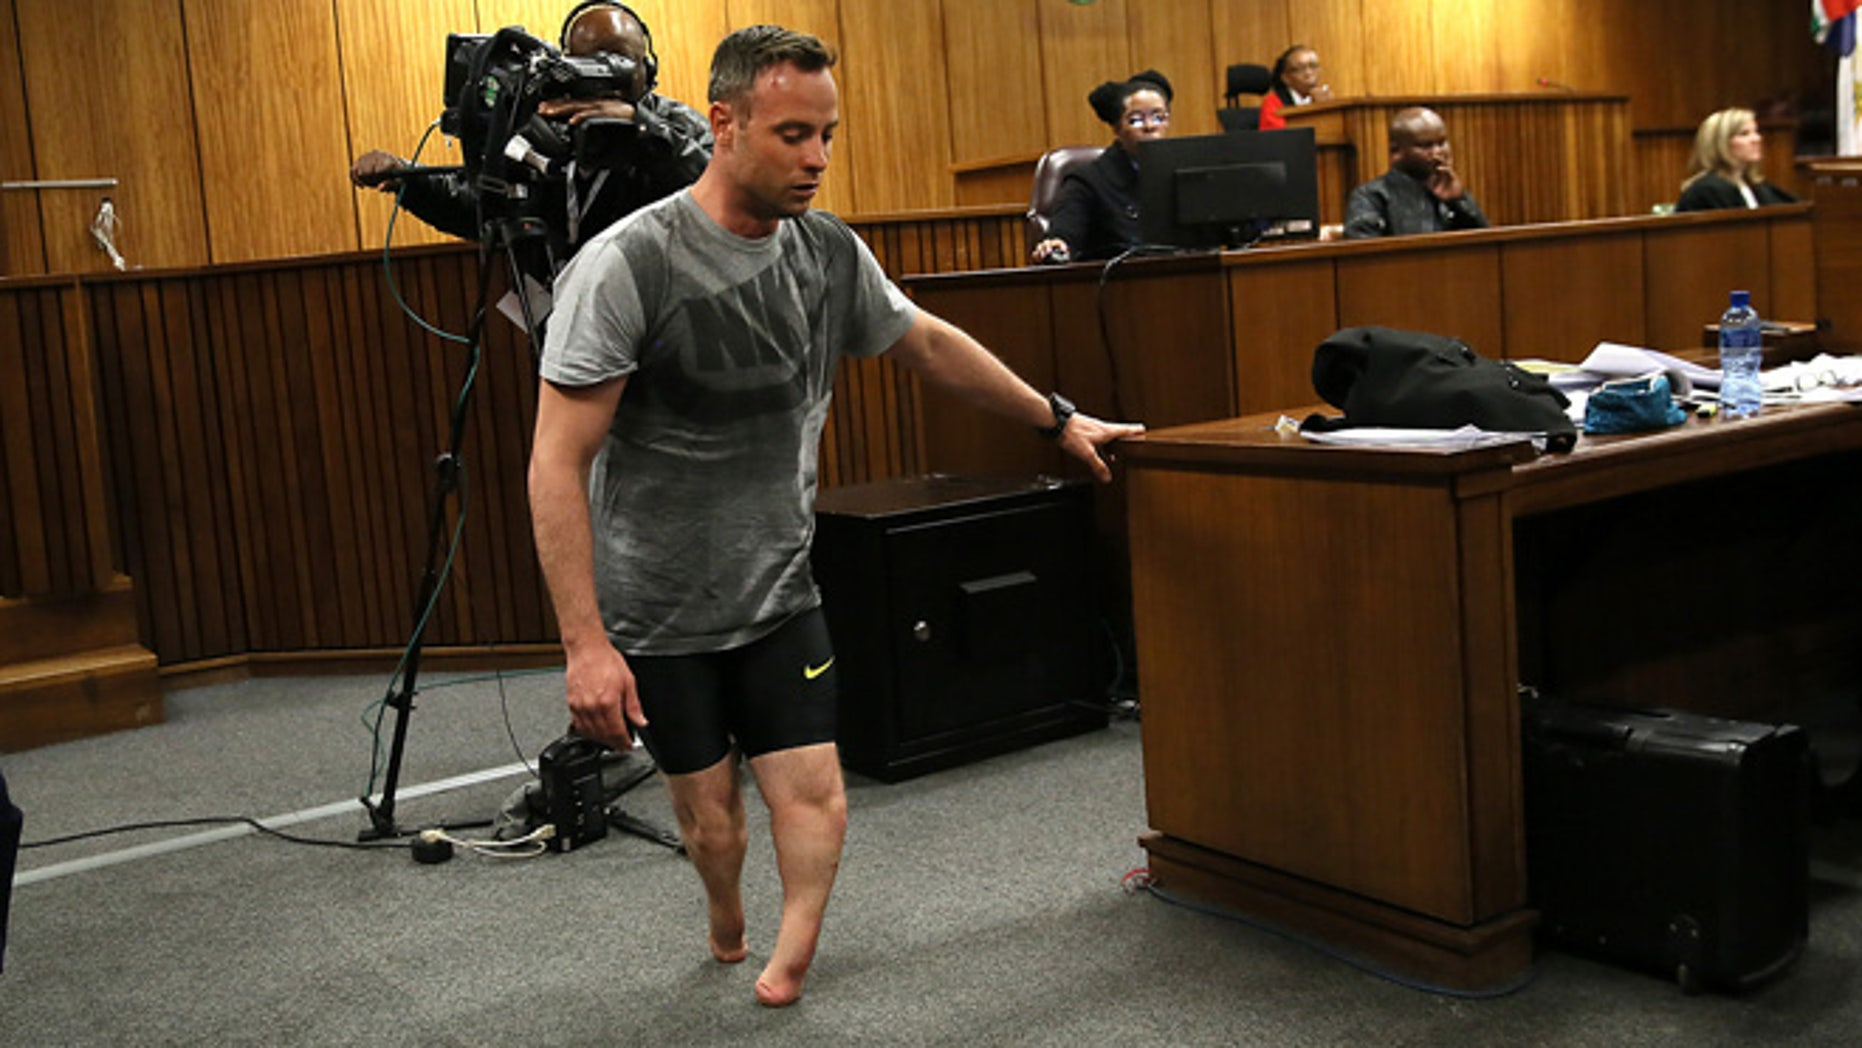 Oscar Pistorius walks on his stumps during argument in mitigation of sentence by his defense attorney Barry Roux in the High Court in Pretoria, South Africa, Wednesday, June 15, 2016. An appeals court found Pistorius guilty of murder and not a lesser charge of culpable homicide for the shooting death of his girlfriend Reeva Steenkamp.  (AP Photo/Alon Skuy, Pool via AP)